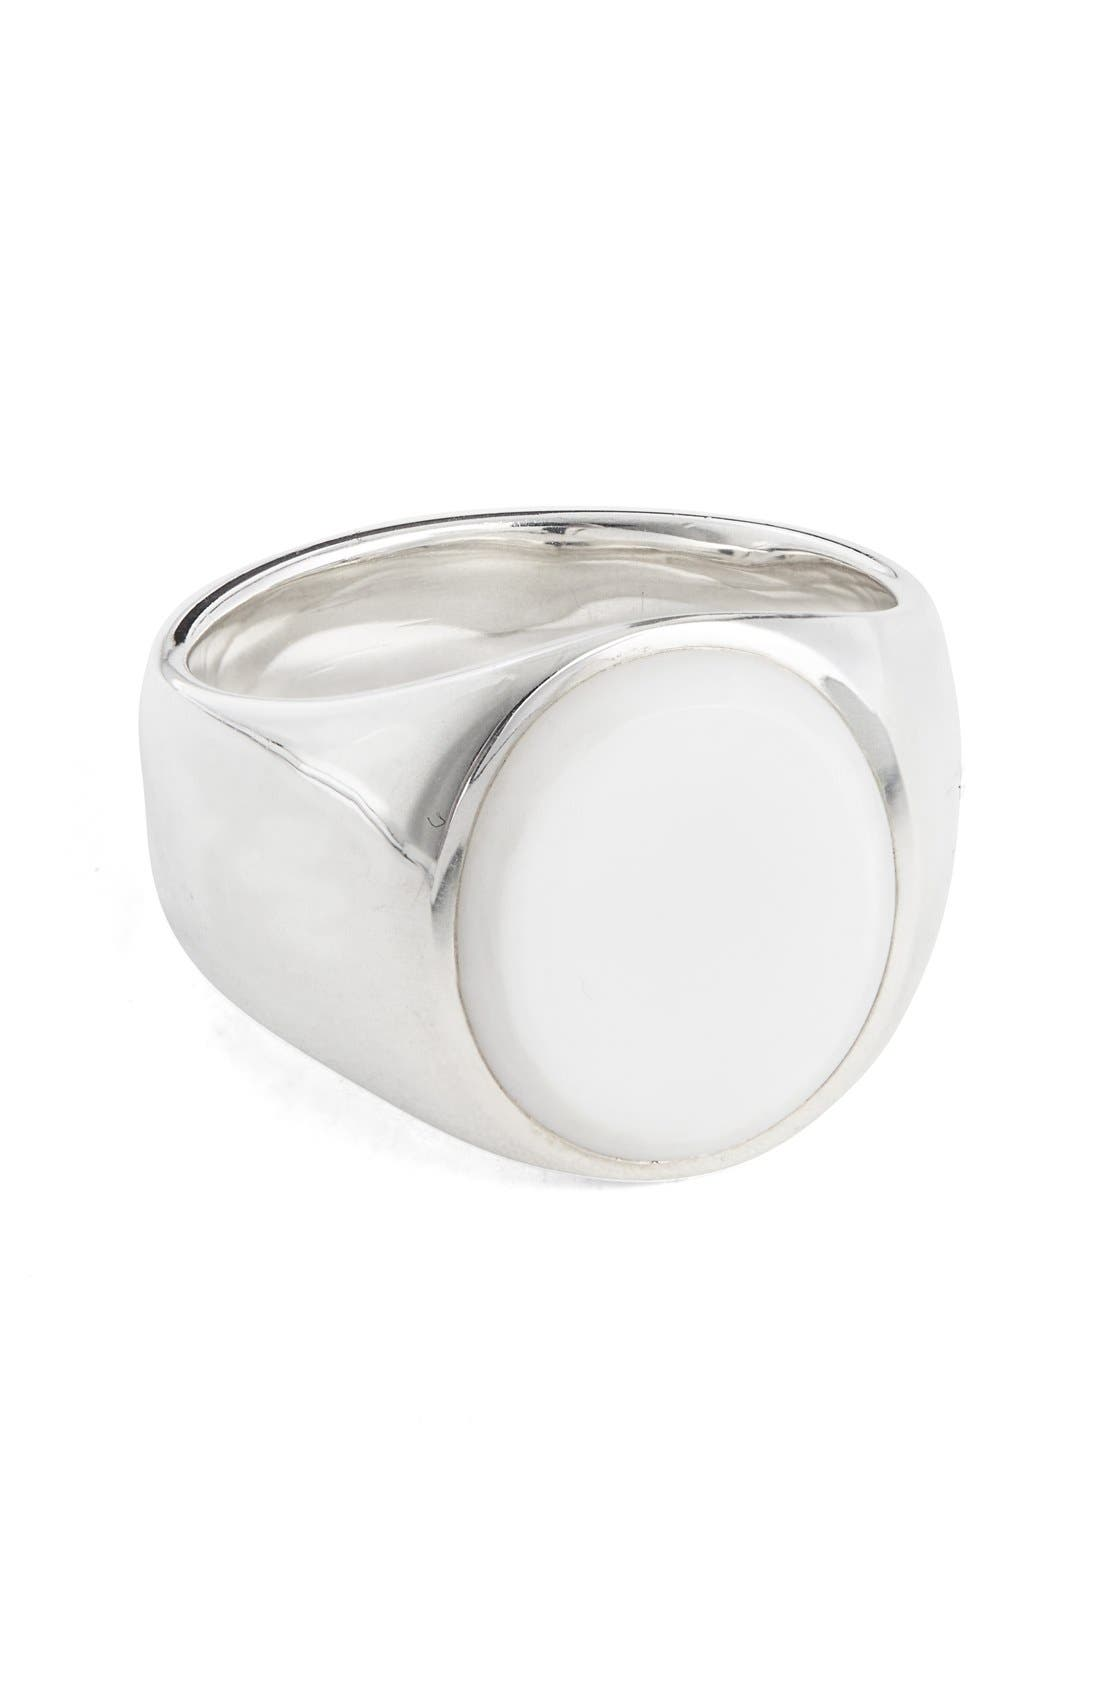 'Patriot Collection' Oval White Agate Signet Ring,                             Main thumbnail 1, color,